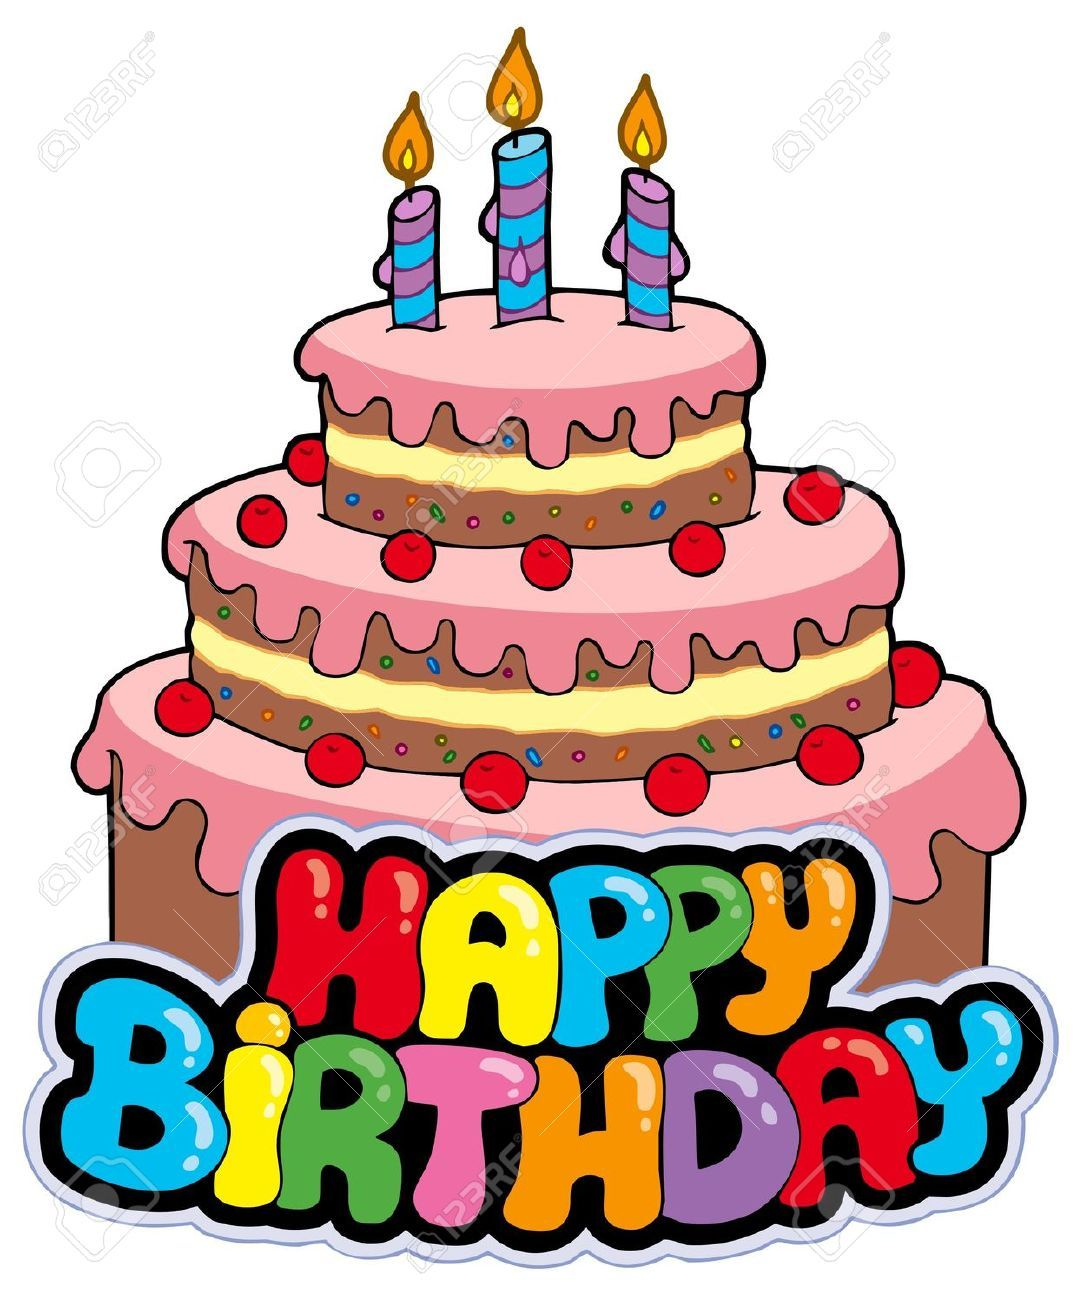 Vintage Birthday Candles Google Search Birthday Cake Clip Art Cartoon Birthday Cake Art Birthday Cake